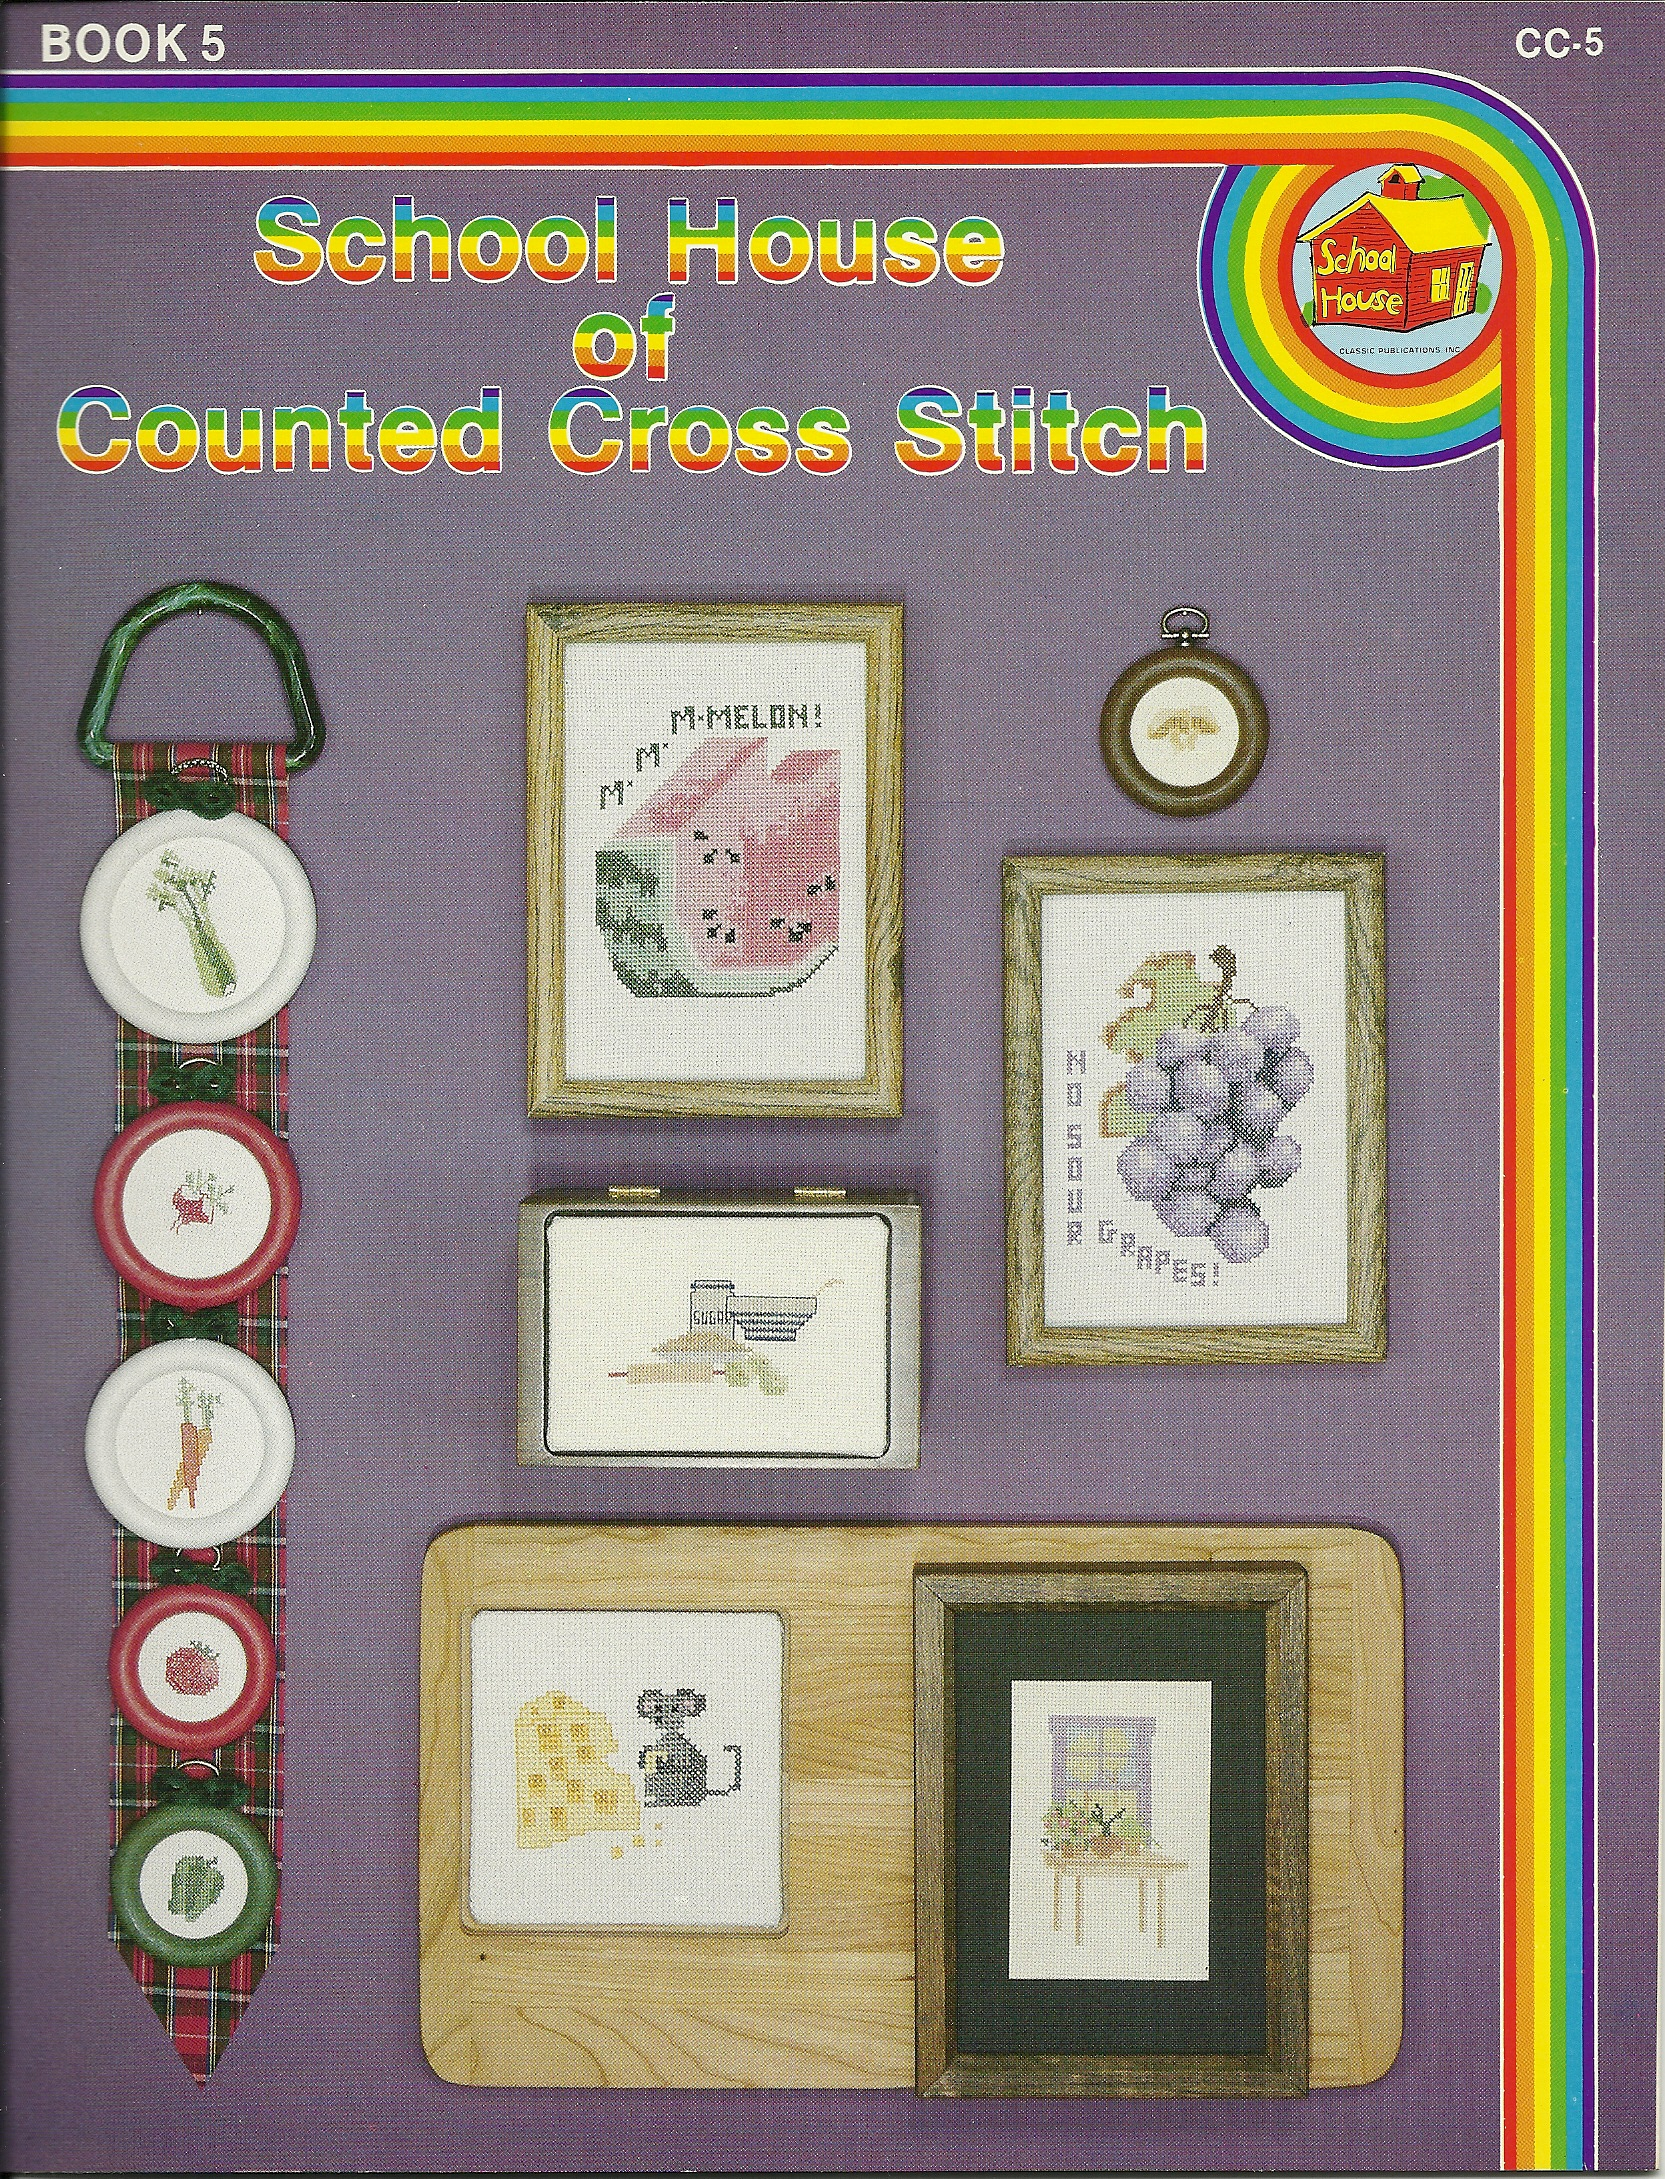 School House of Counted Cross Stitch  Book 5